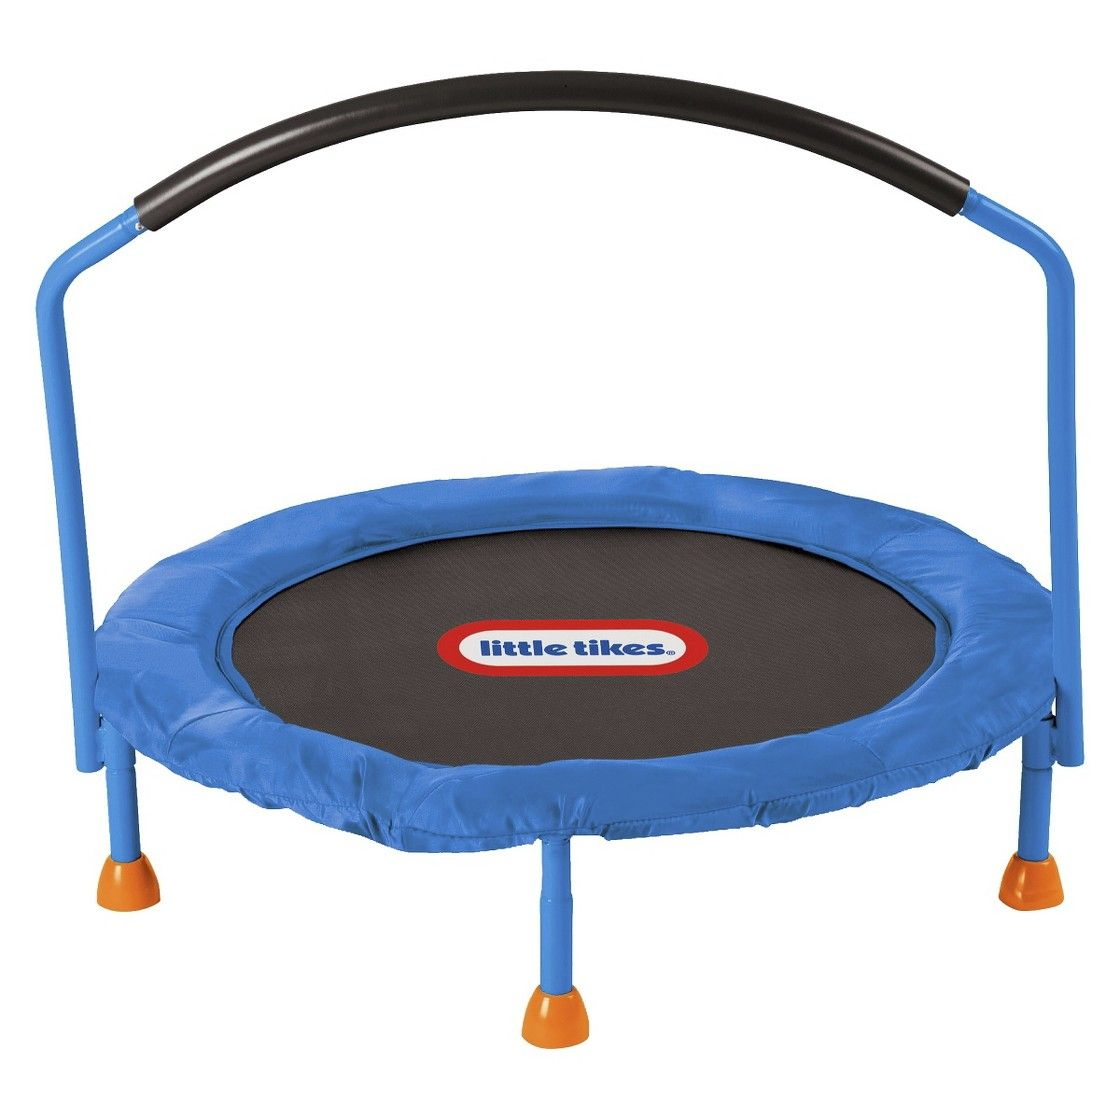 die besten 25 little tikes trampoline ideen auf pinterest kleinkindtrampolin trampolin f r. Black Bedroom Furniture Sets. Home Design Ideas